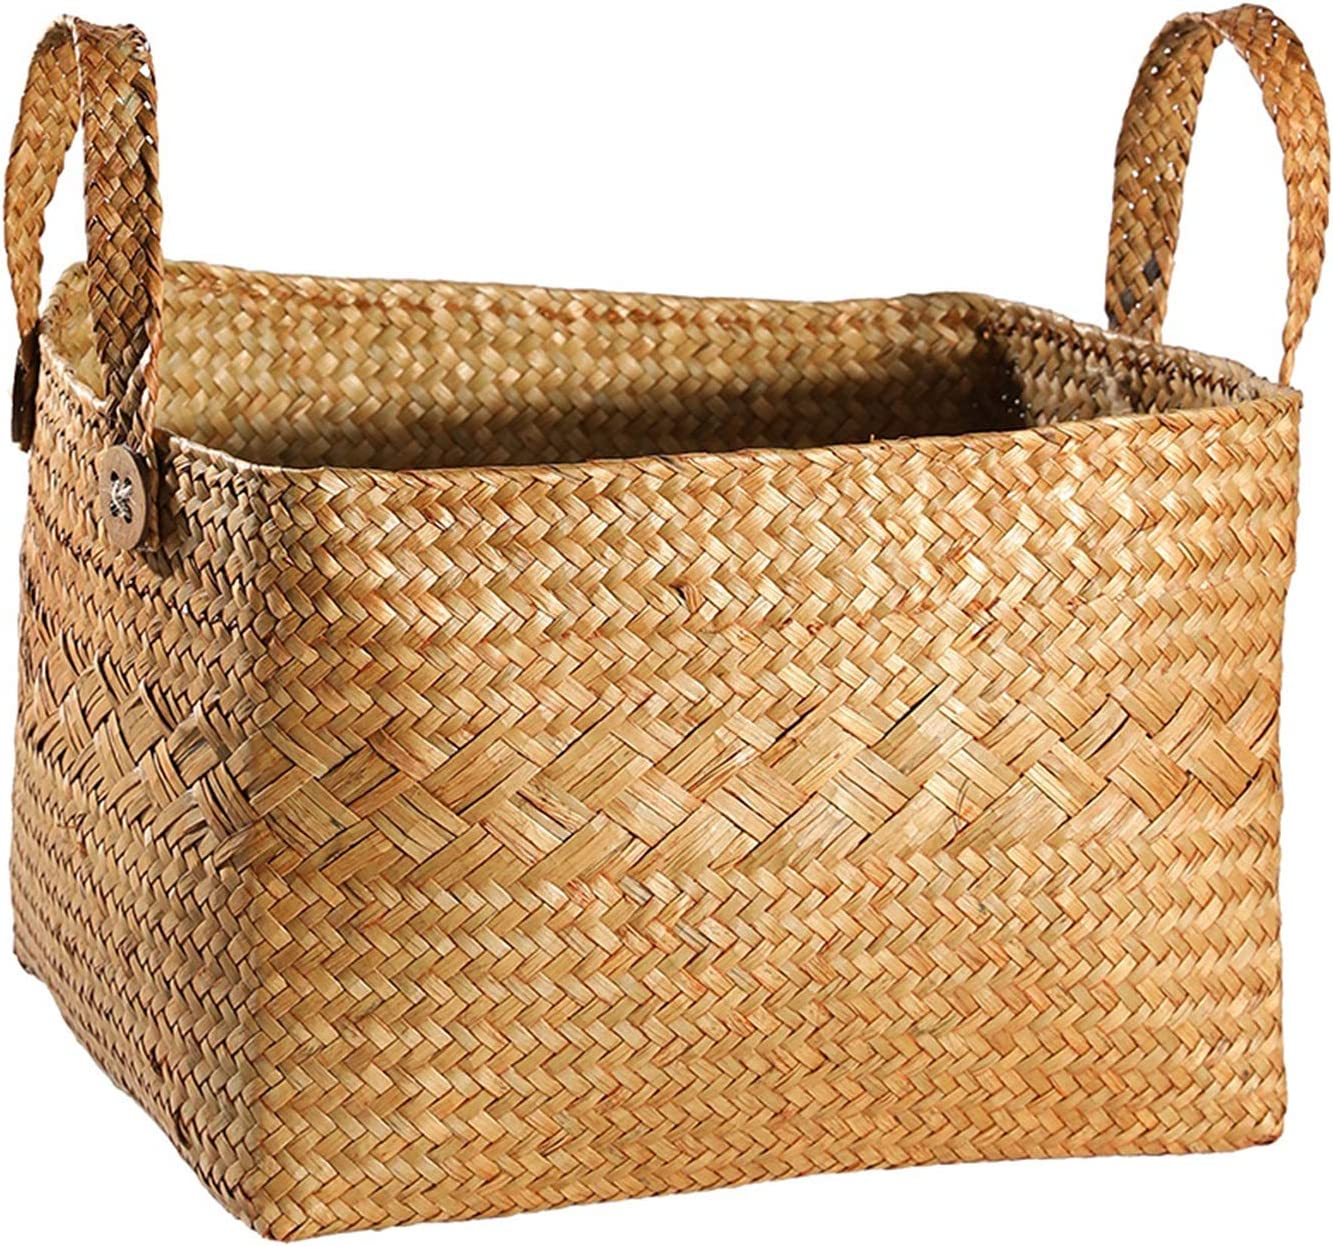 Electric oven Free shipping anywhere in the nation Woven Basket Houston Mall for Plant Storage Pot Laundry